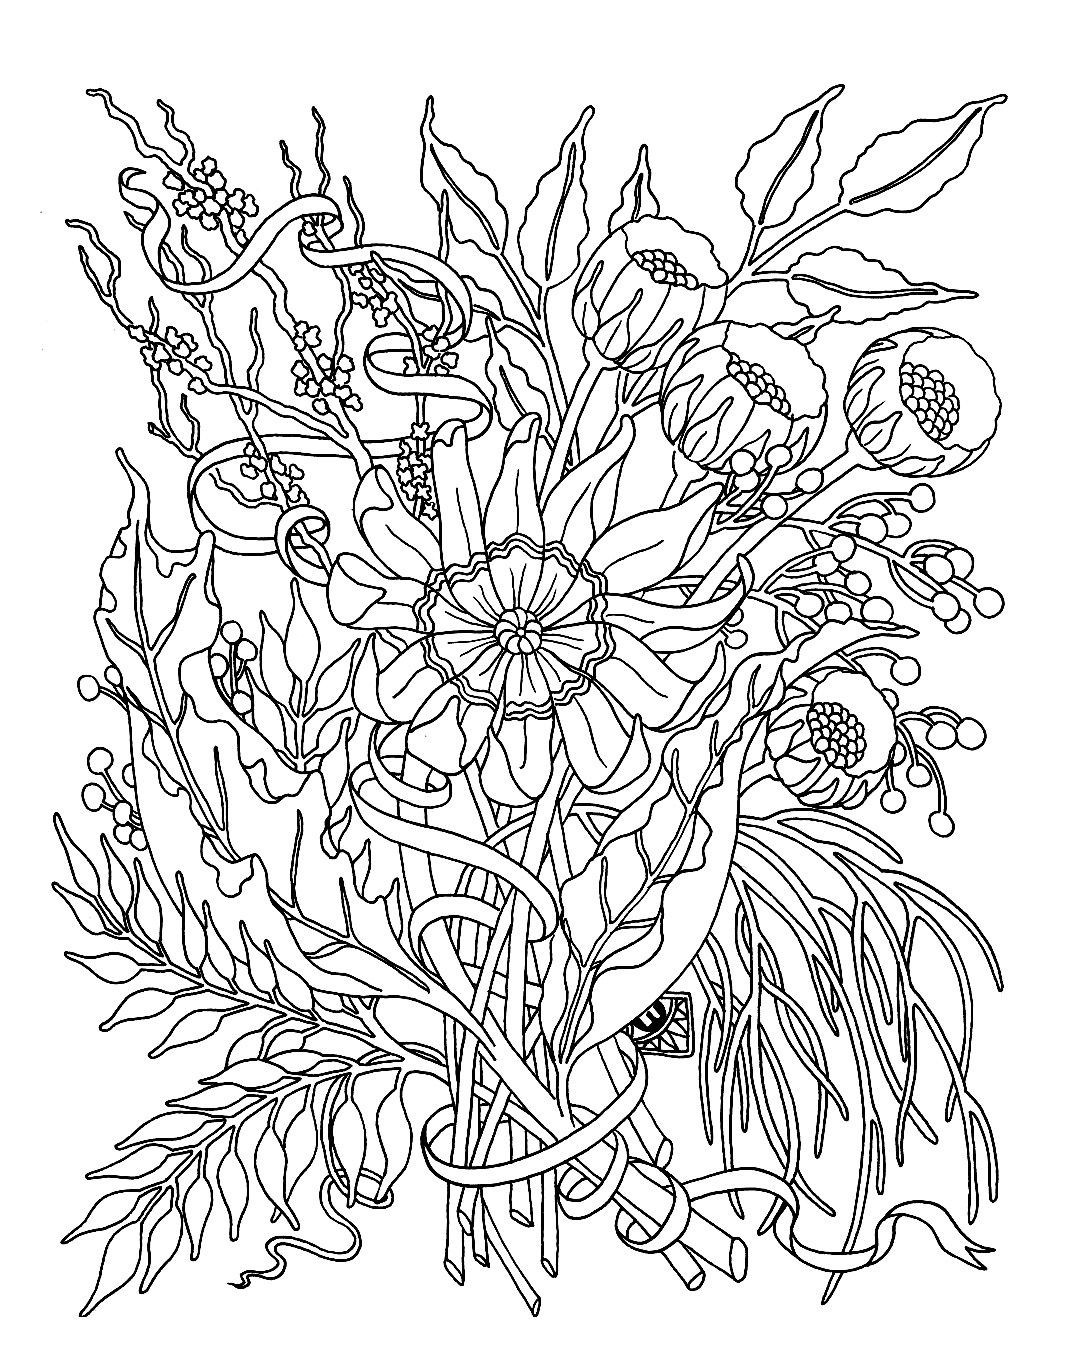 Fall Flowers Coloring Pages Printable 5j - Free For Children